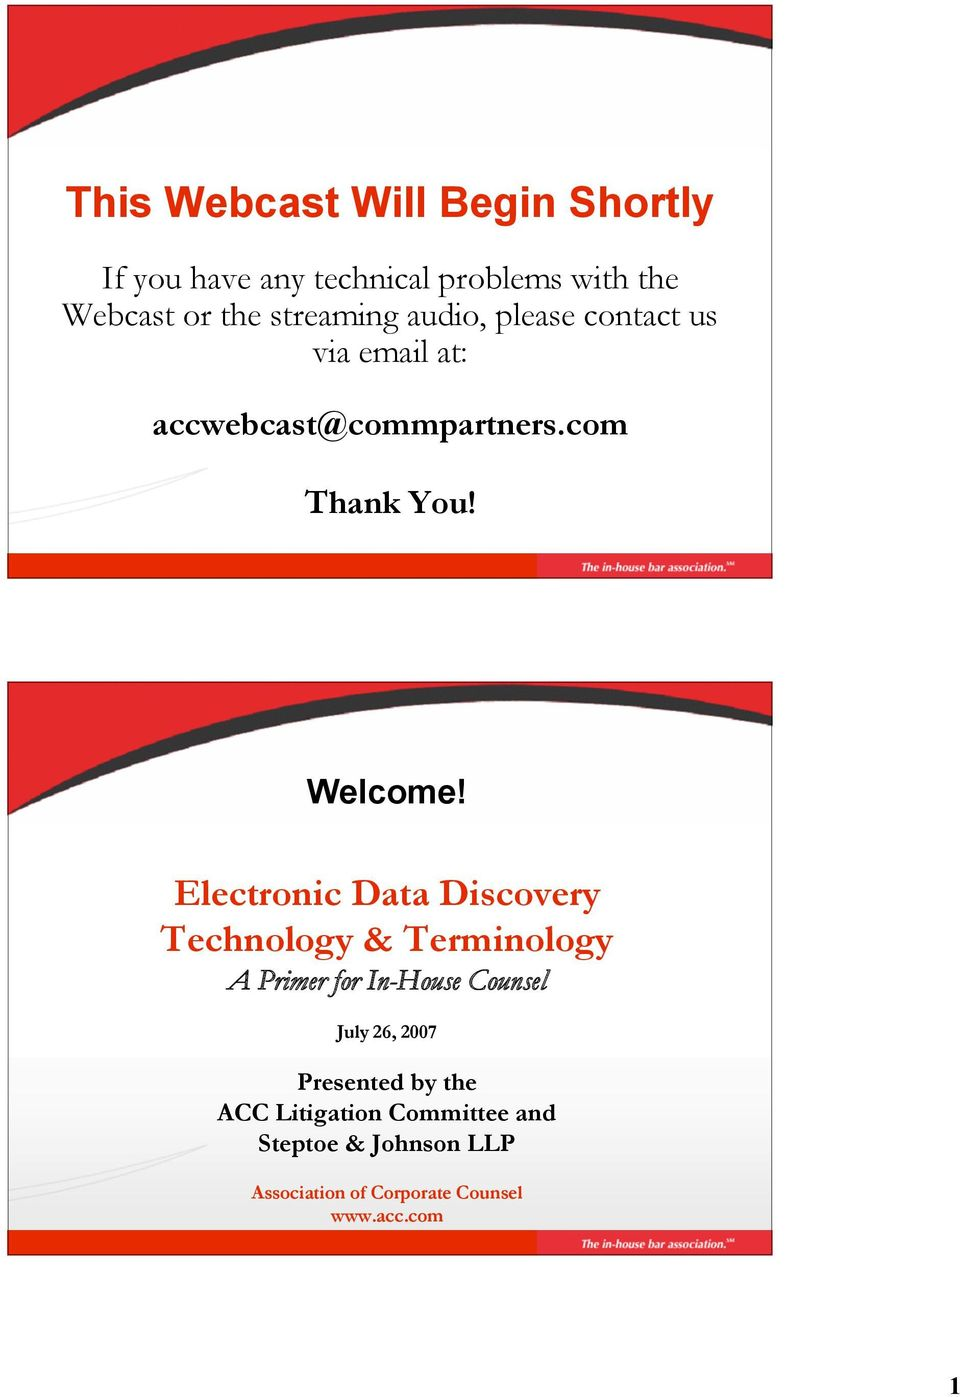 Electronic Data Discovery Technology & Terminology A Primer for In-House Counsel July 26, 2007